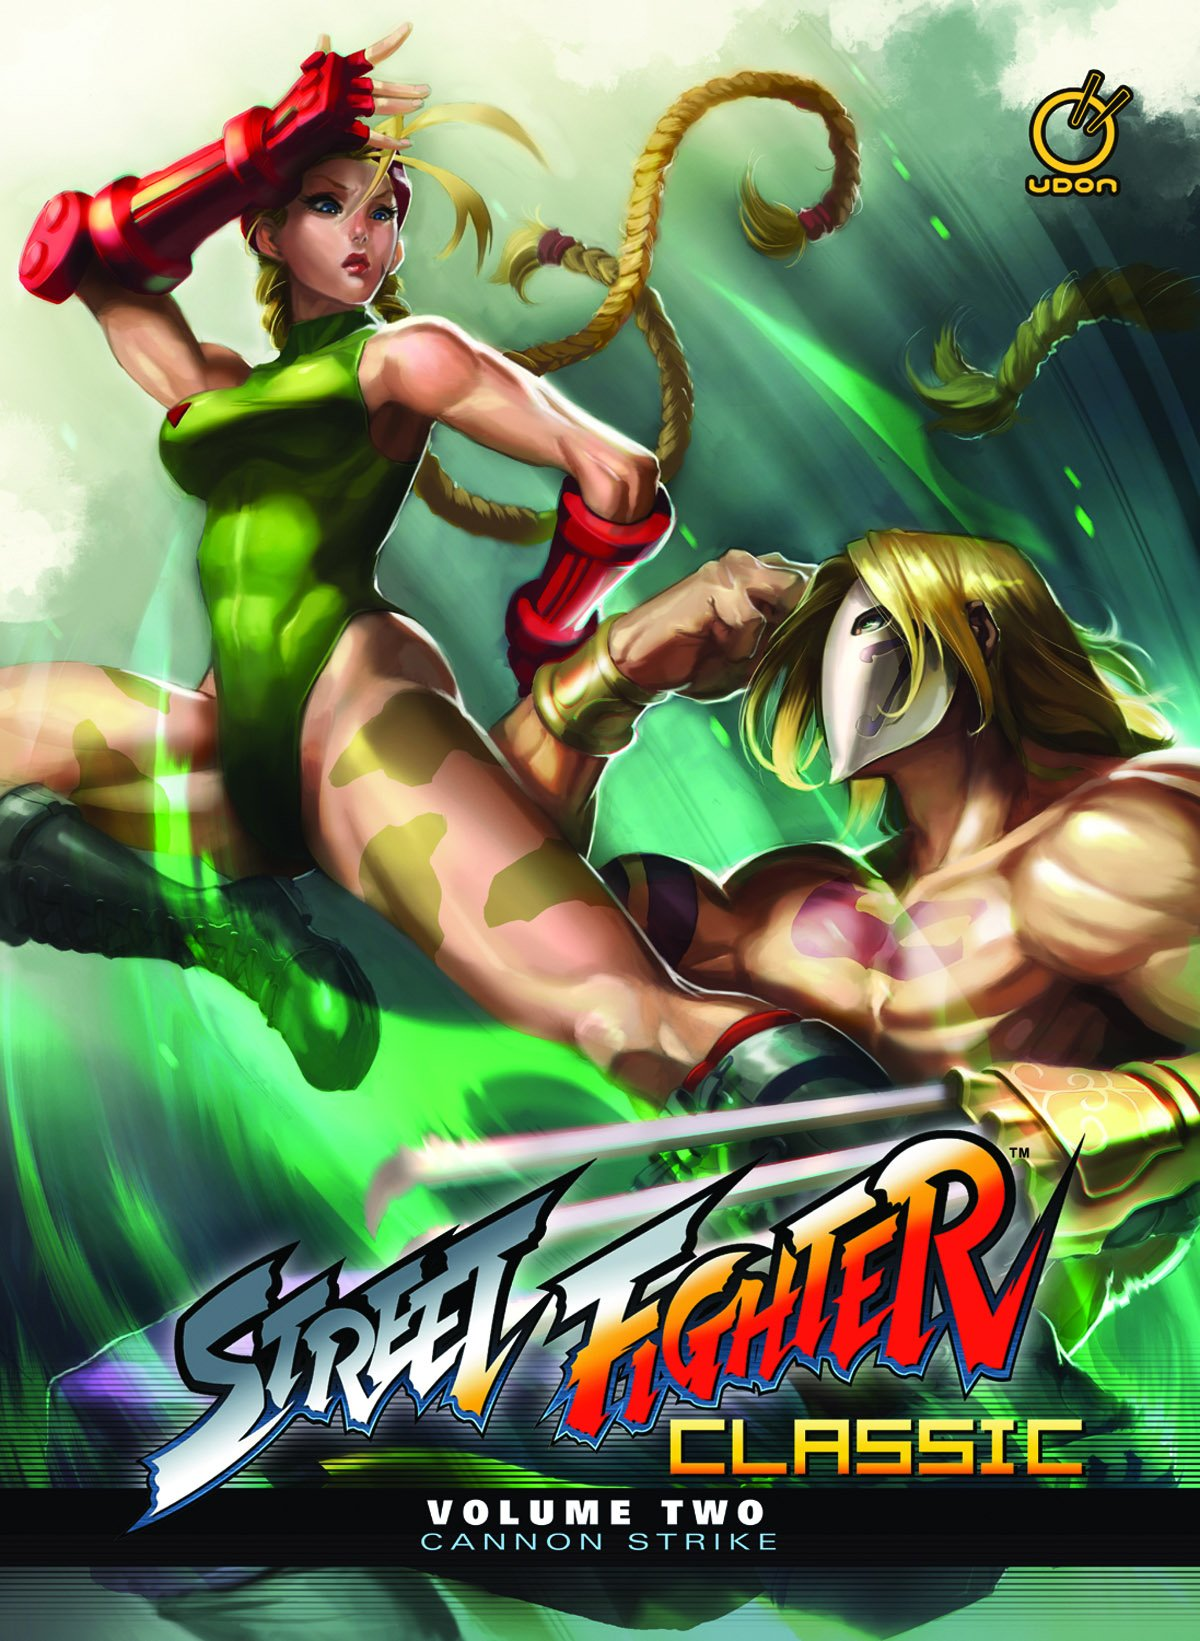 Street Fighter Classic HC Vol.2 Cannon Strike